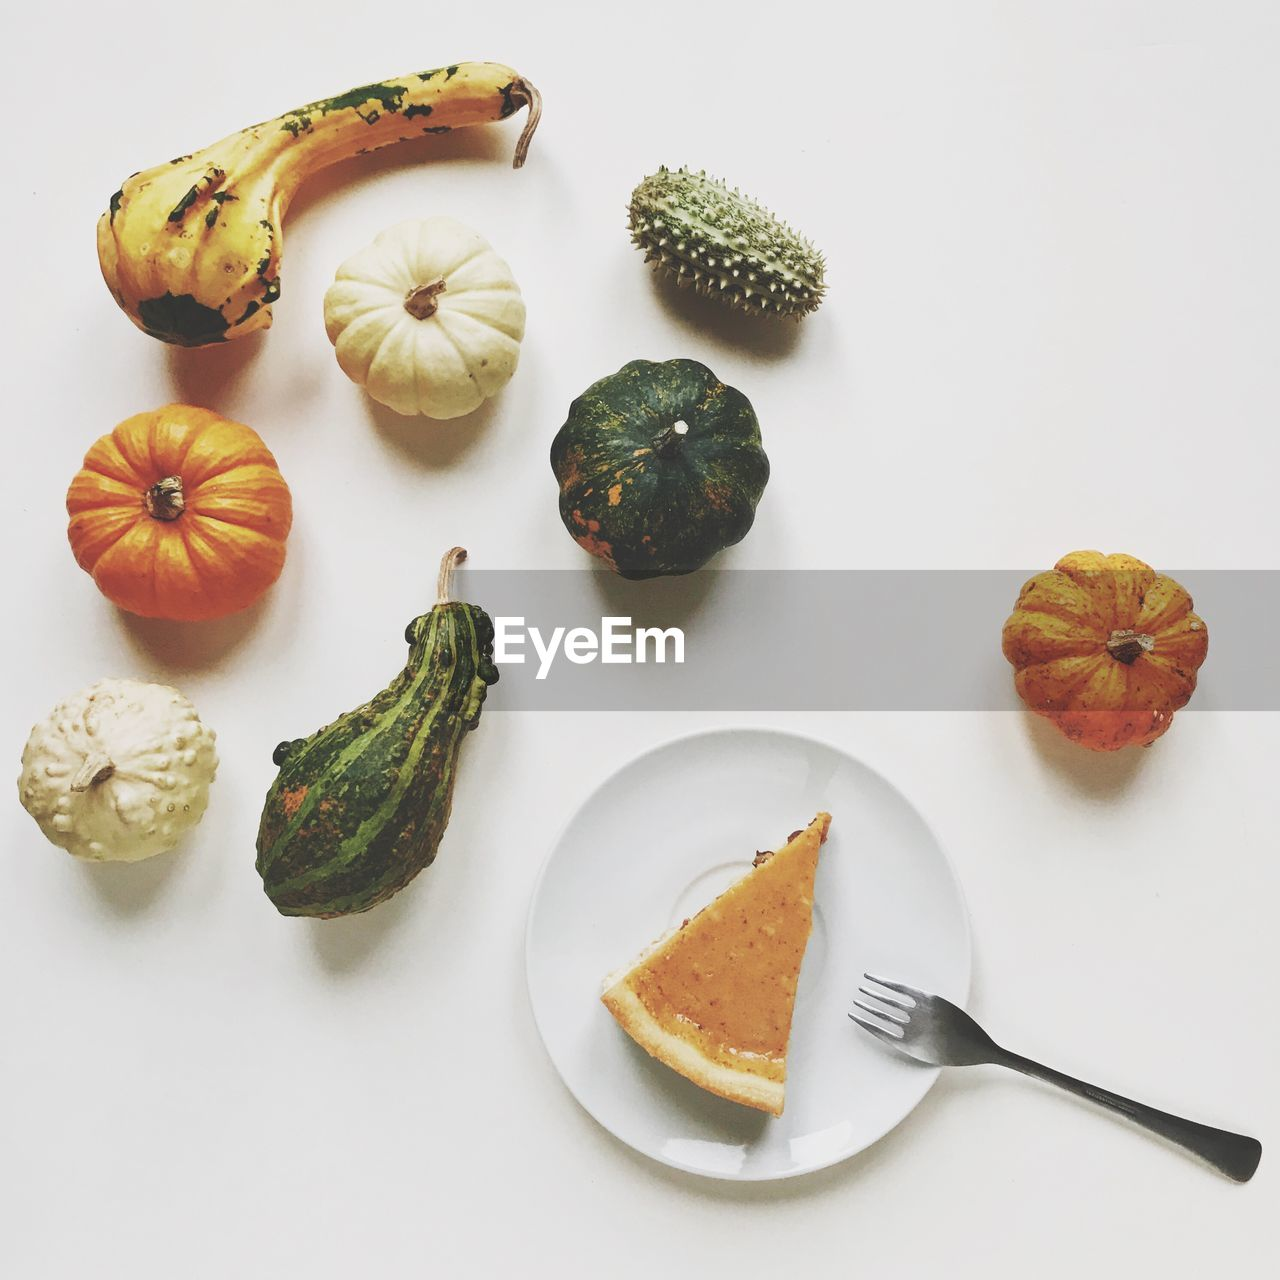 food, food and drink, freshness, healthy eating, white background, wellbeing, still life, studio shot, indoors, high angle view, no people, vegetable, eating utensil, pumpkin, group of objects, directly above, table, kitchen utensil, fruit, close-up